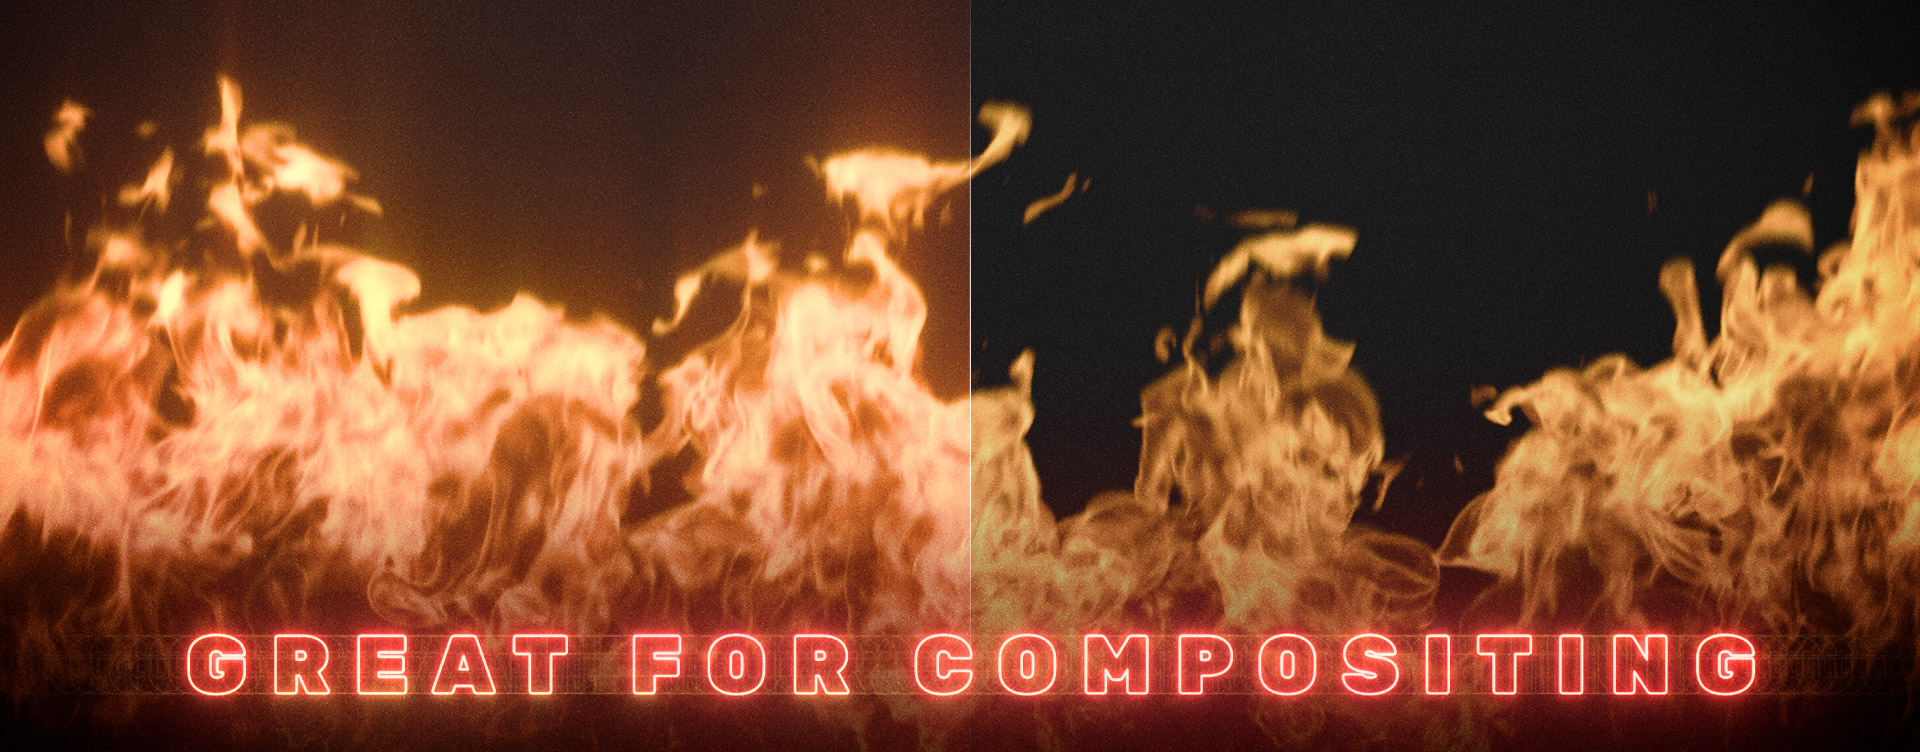 Great for compositing CG elements. Simulate bloom and illuminate objects.